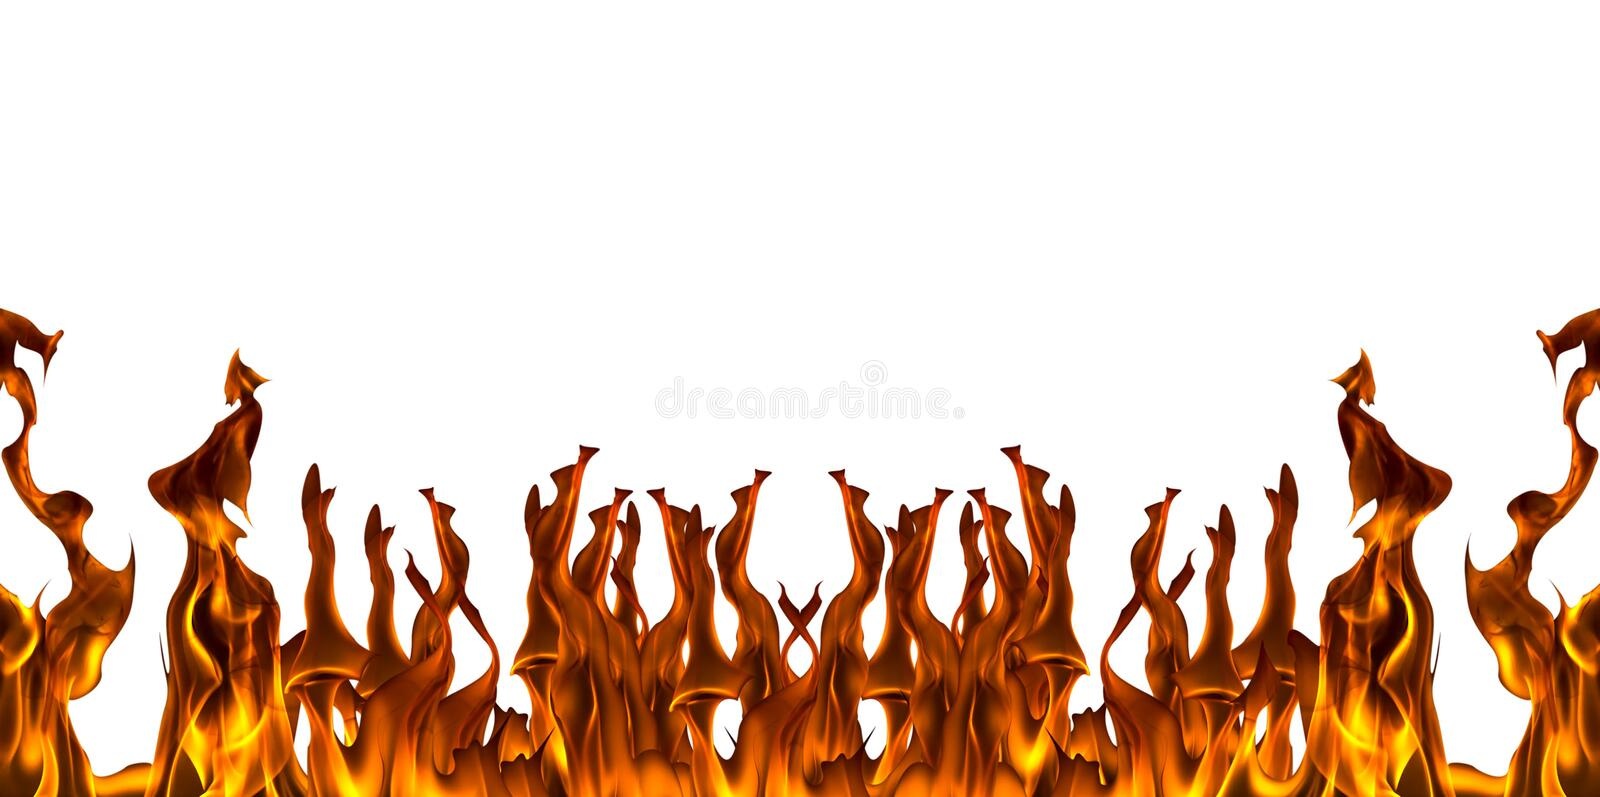 Fire flame with sparks on a white background vector illustration